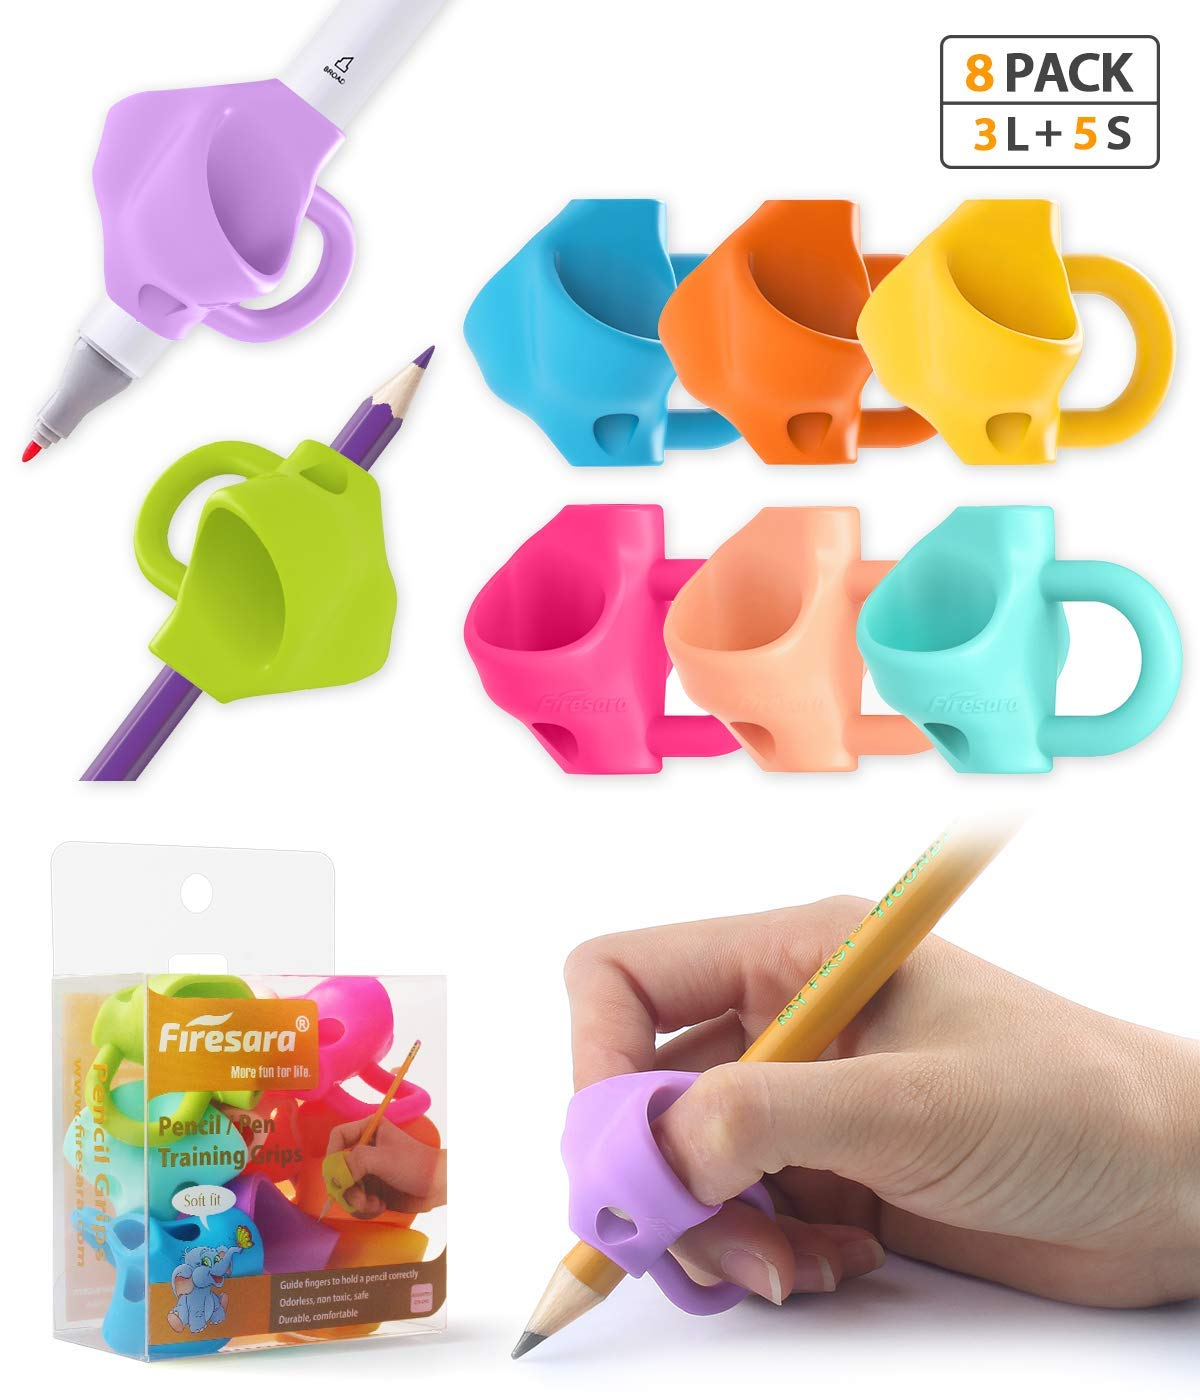 Pencil Grips,Firesara Three Fingers Fixed Handwriting Posture Correction Grip Trainer,Two Sizes and 8pcs Pencil Grips for Kids, Adults, Arthritis Designed for Righties or Lefties(5Standard+3Large) by Firesara